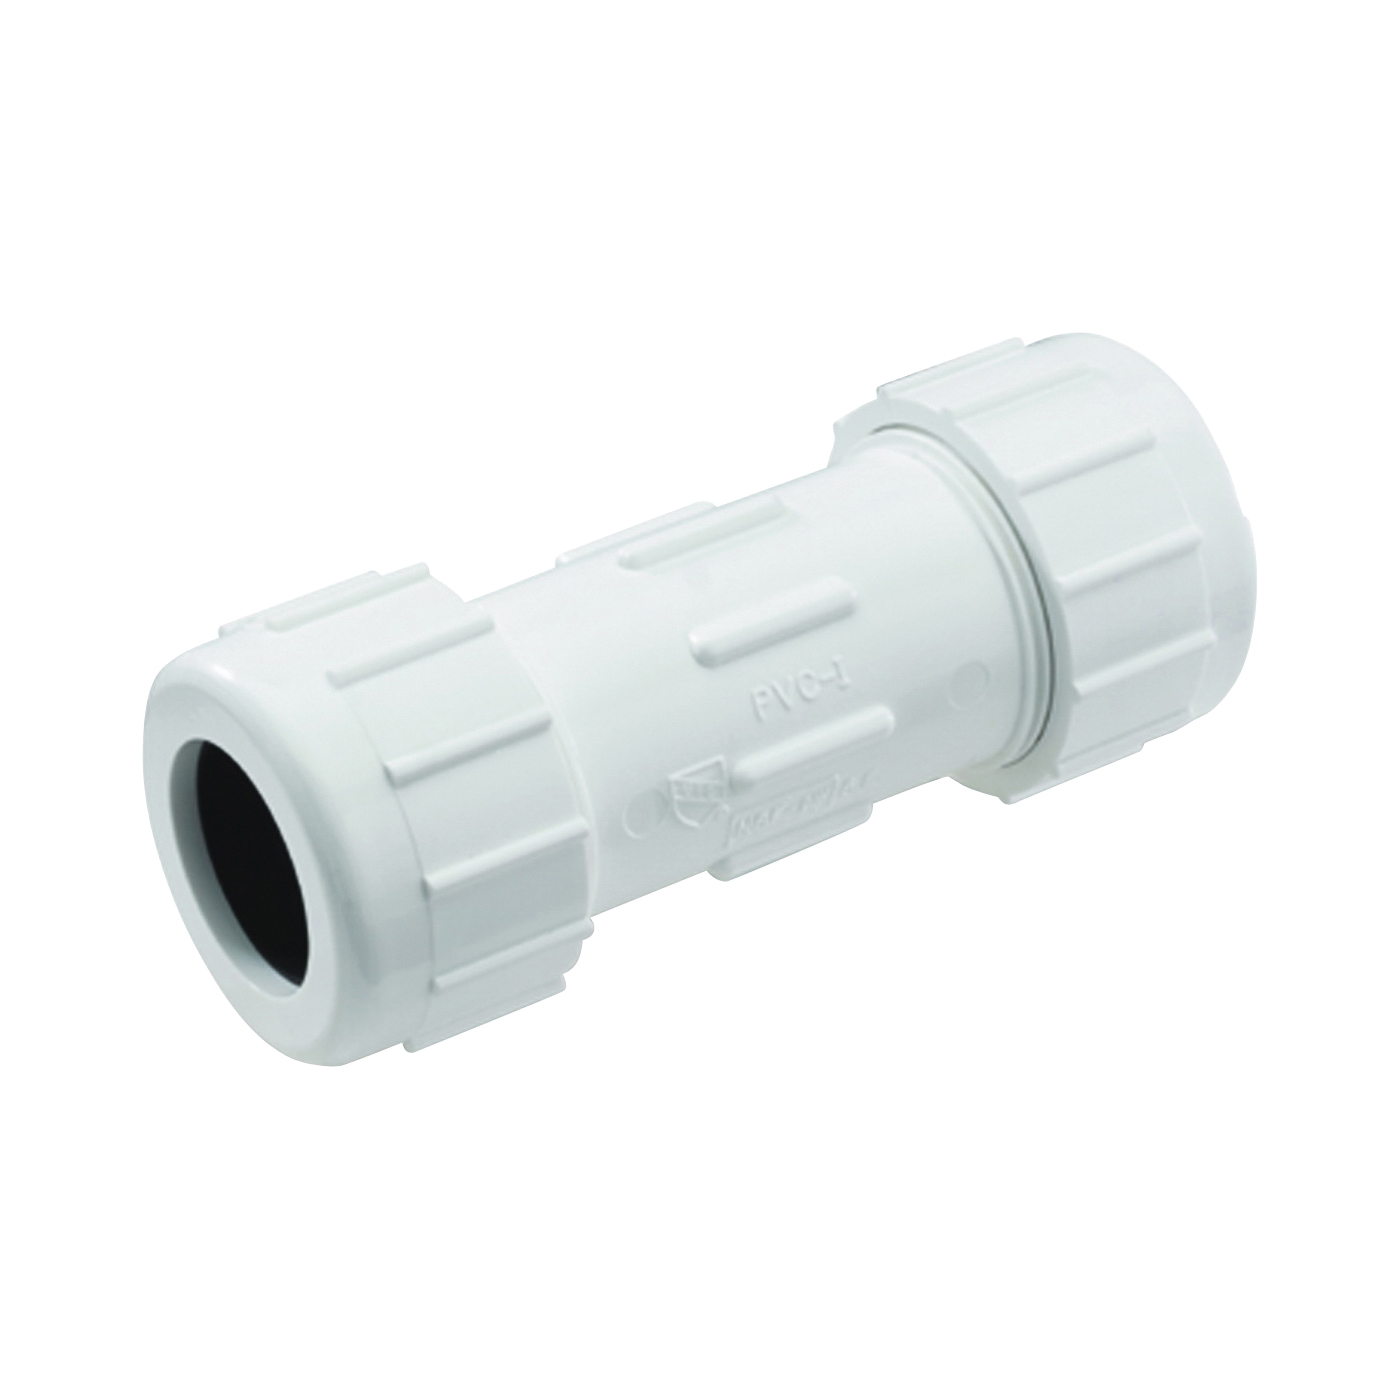 Picture of NDS CCC-0500 Compression Coupler, 1/2 in, White, SCH 40 Schedule, 150 psi Pressure